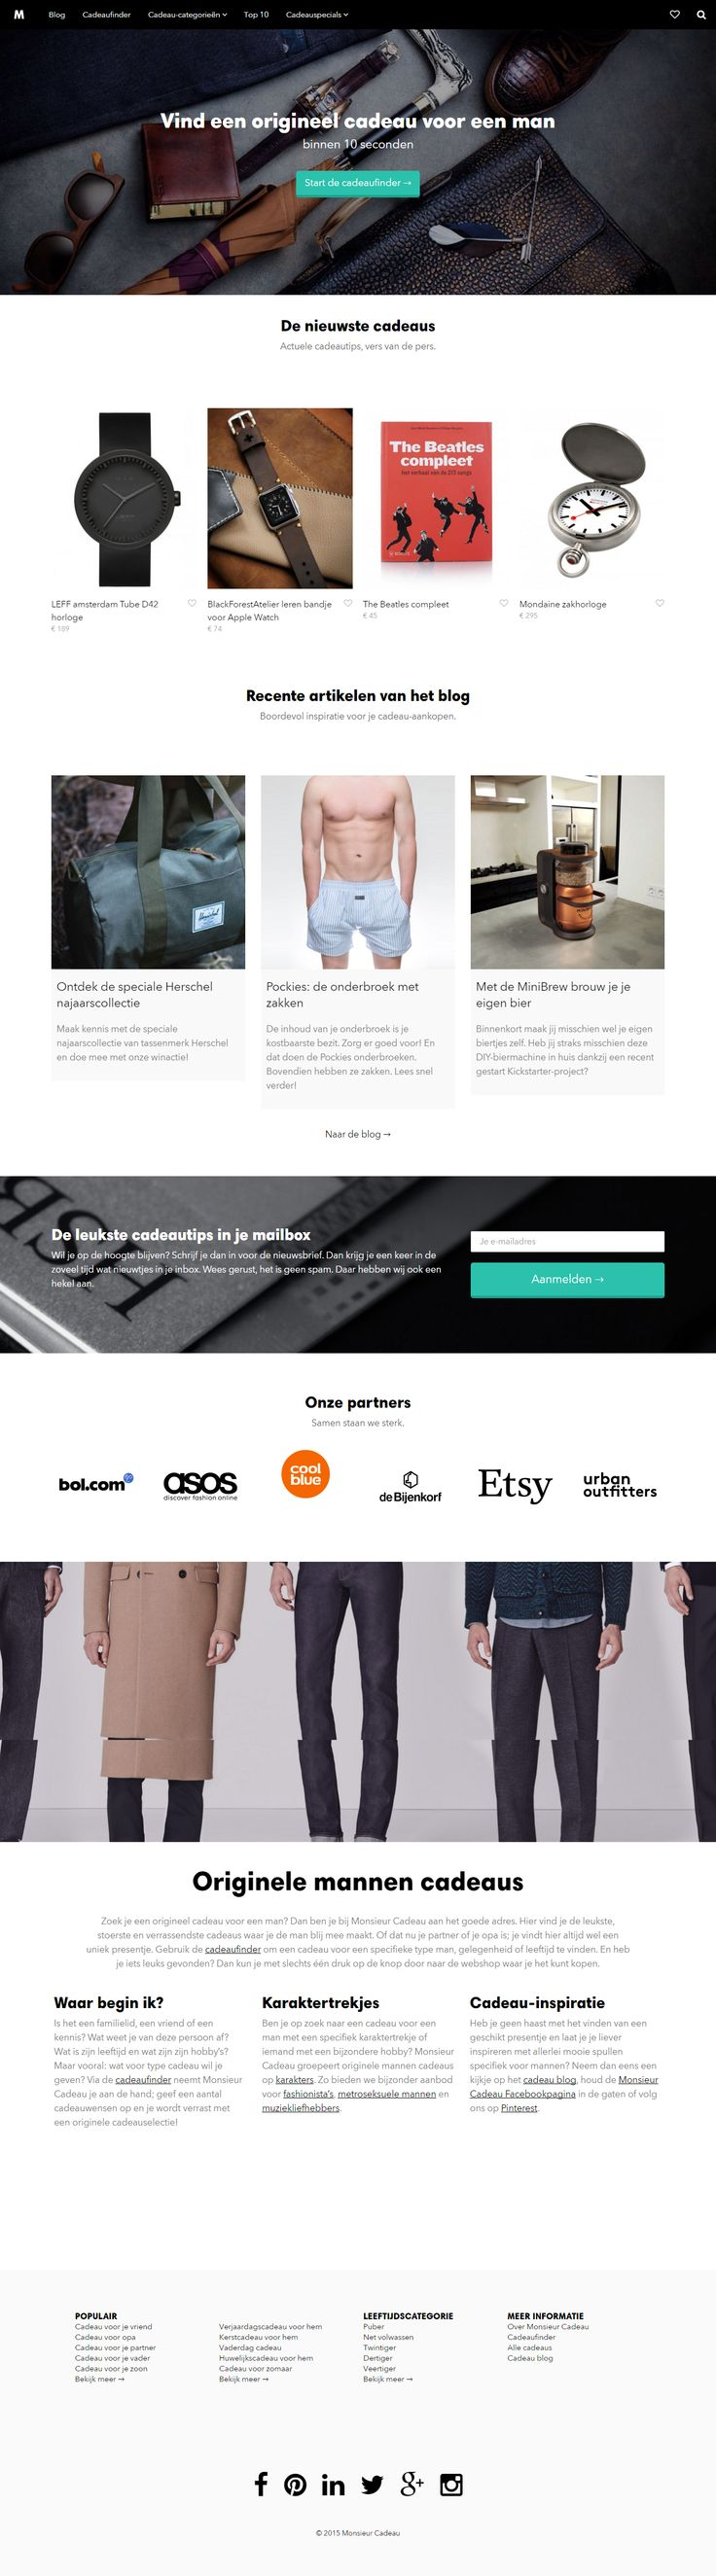 The story of an affiliate store built with Shopkeeper WP theme https://www.getbowtied.com/affiliate-marketing-tips-monsieur-cadeau-store/?utm_source=pinterest.com&utm_medium=social&utm_content=monsieur-cadeau&utm_campaign=customer-stories #affiliatemarketing #webdesign #wordpress #bestwordpress #ecommerce #onlineshop #ui #uxdesign #customerstories